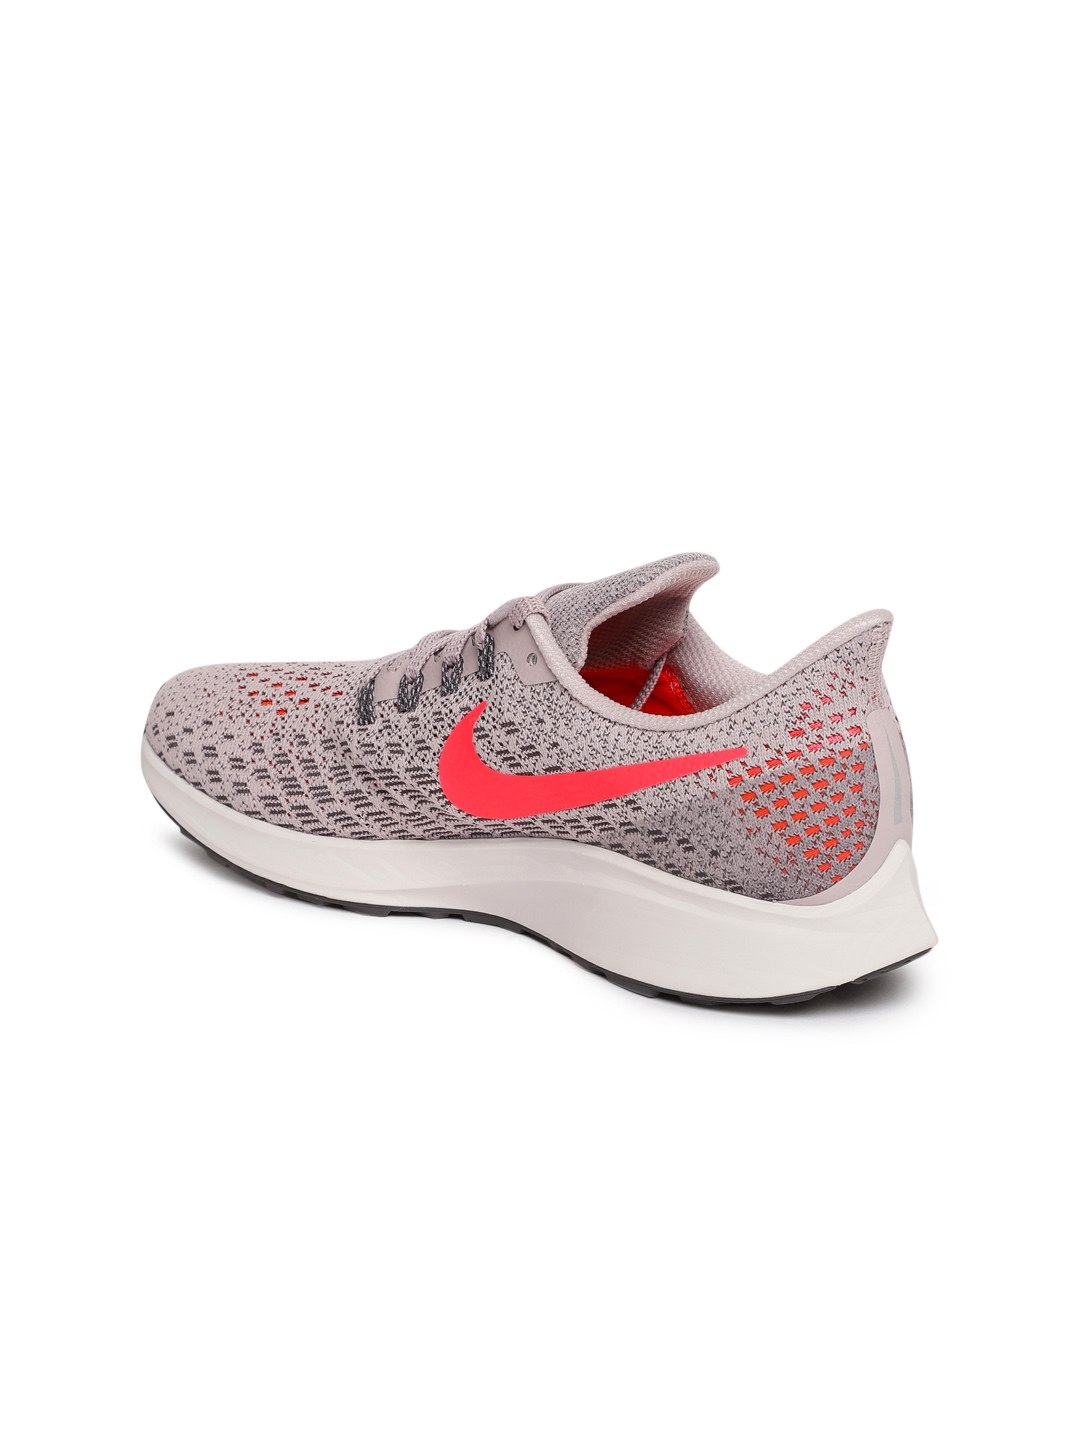 be8e34223 Buy Nike Womens Air Zoom Pegasus 35 Running Shoes - Sports Shoes for ...